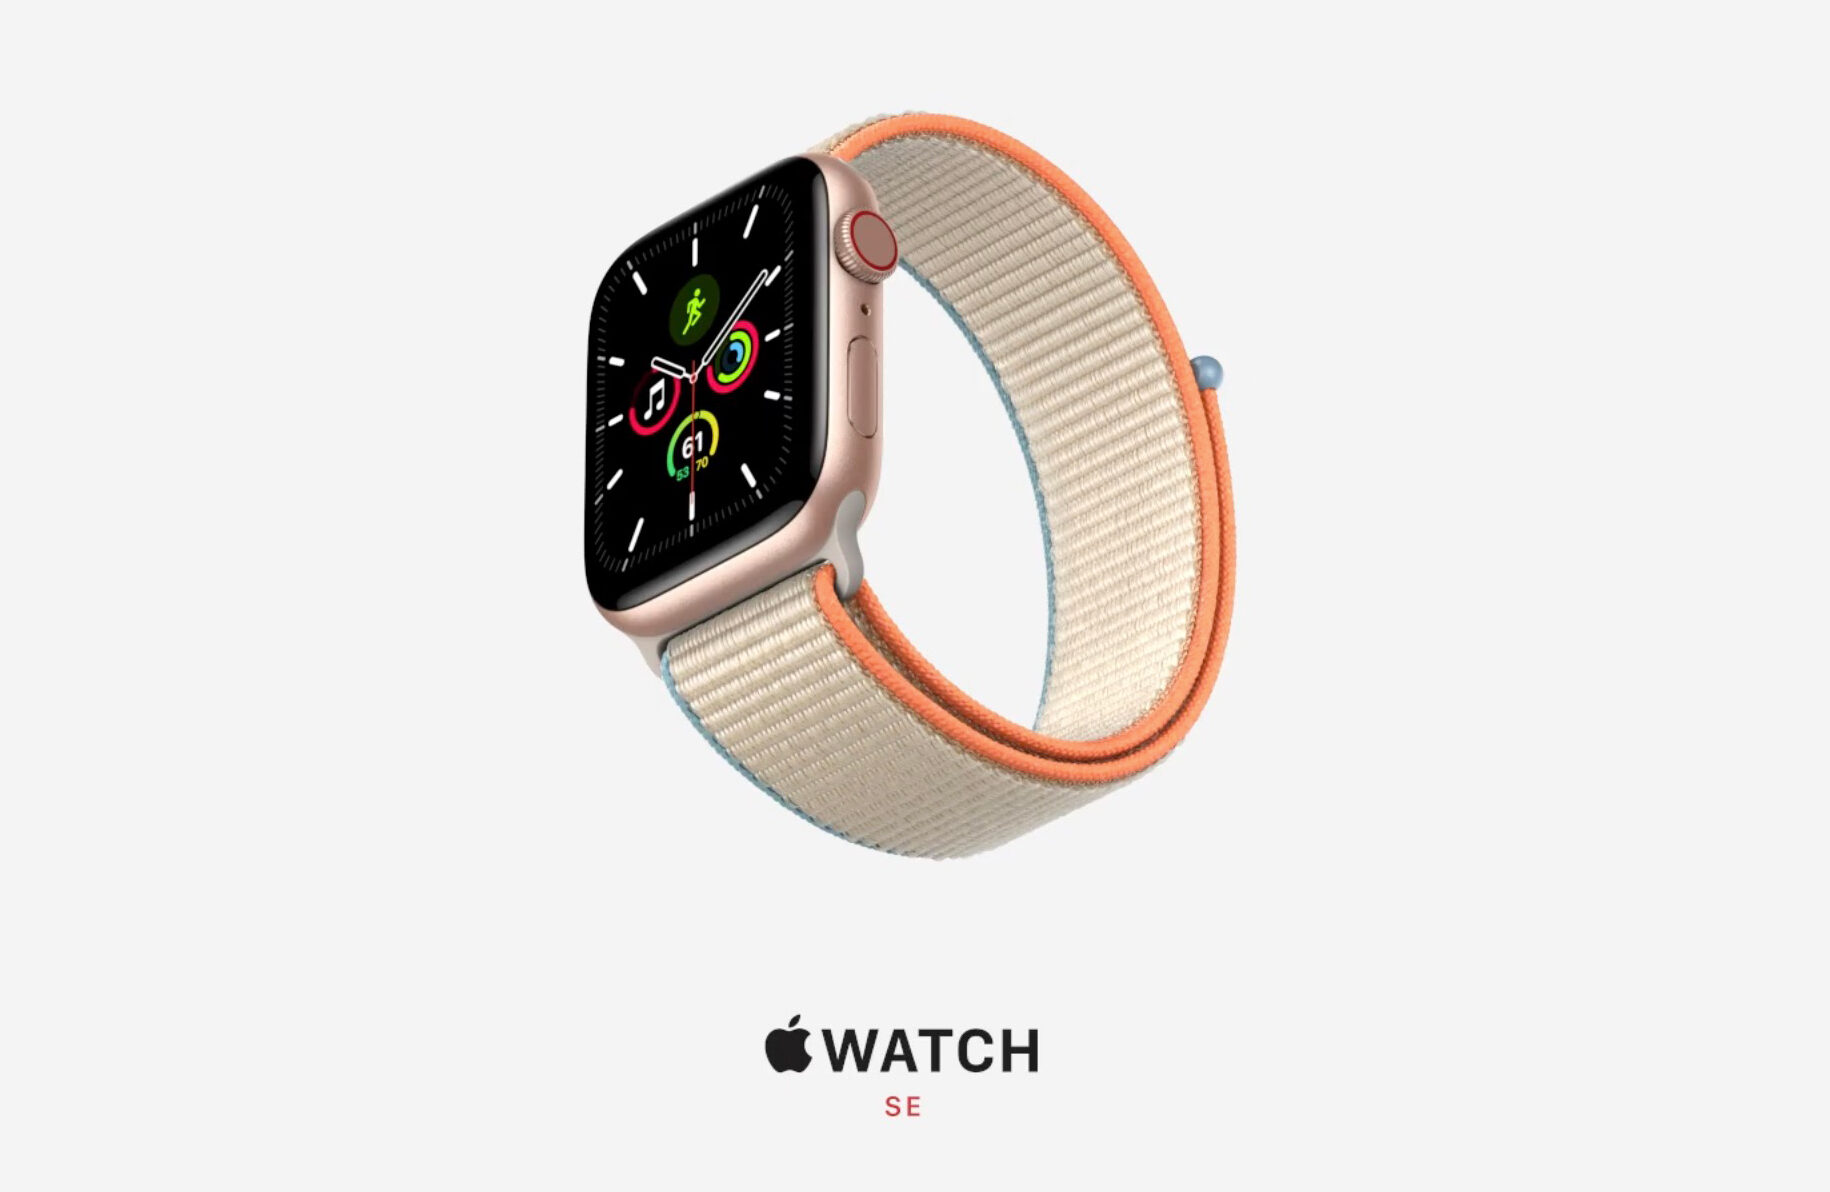 5 Reasons to Buy the Apple Watch SE & 4 Reasons Not To